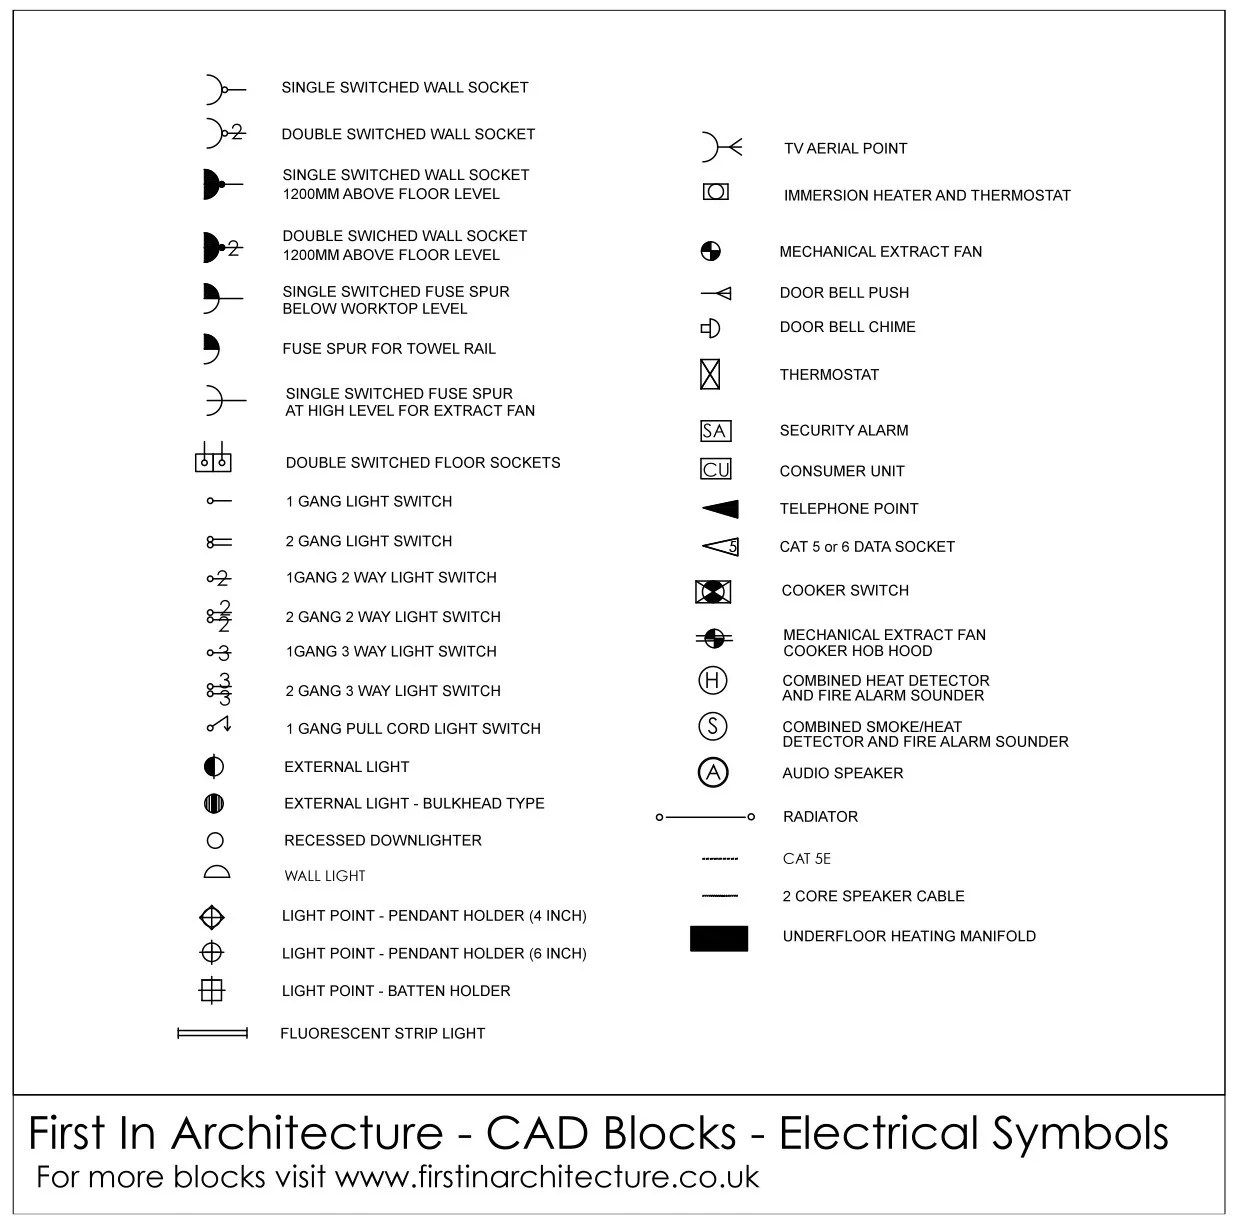 hight resolution of free cad blocks electrical symbols rh firstinarchitecture co uk electrical wiring diagrams symbols chart blueprint diagram example